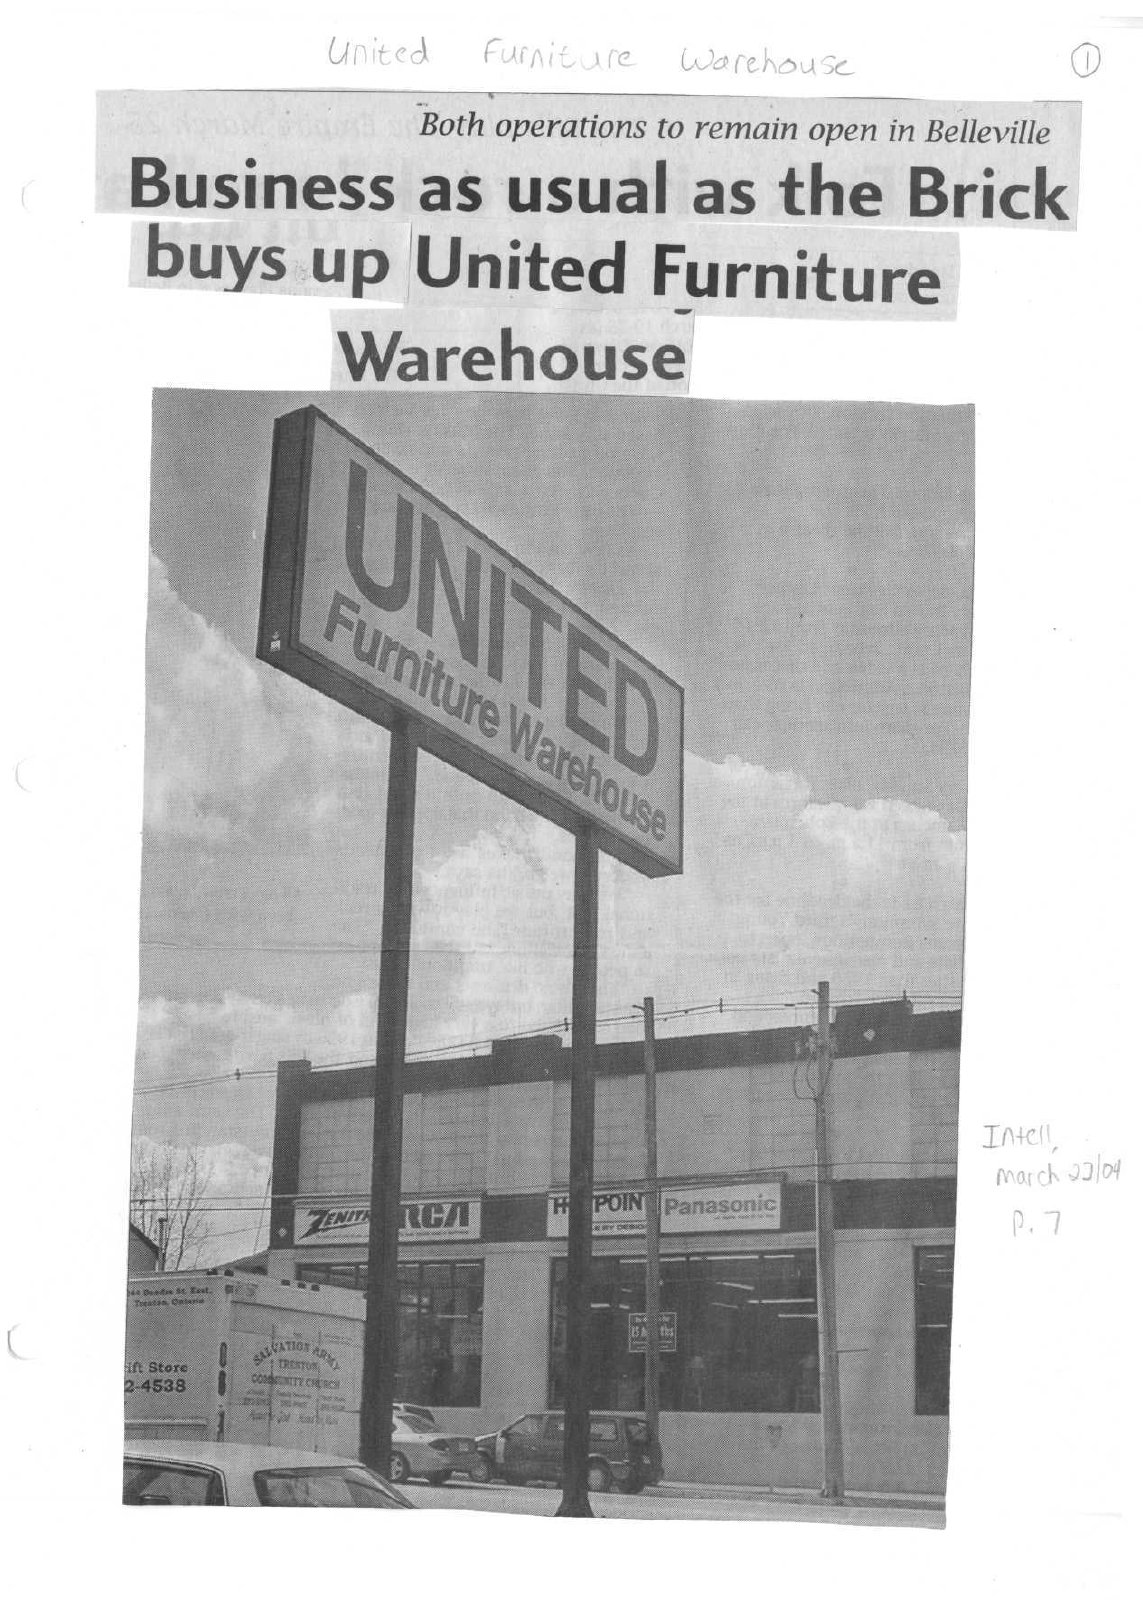 Business as usual as the Brick buys up United Furniture Warehouse